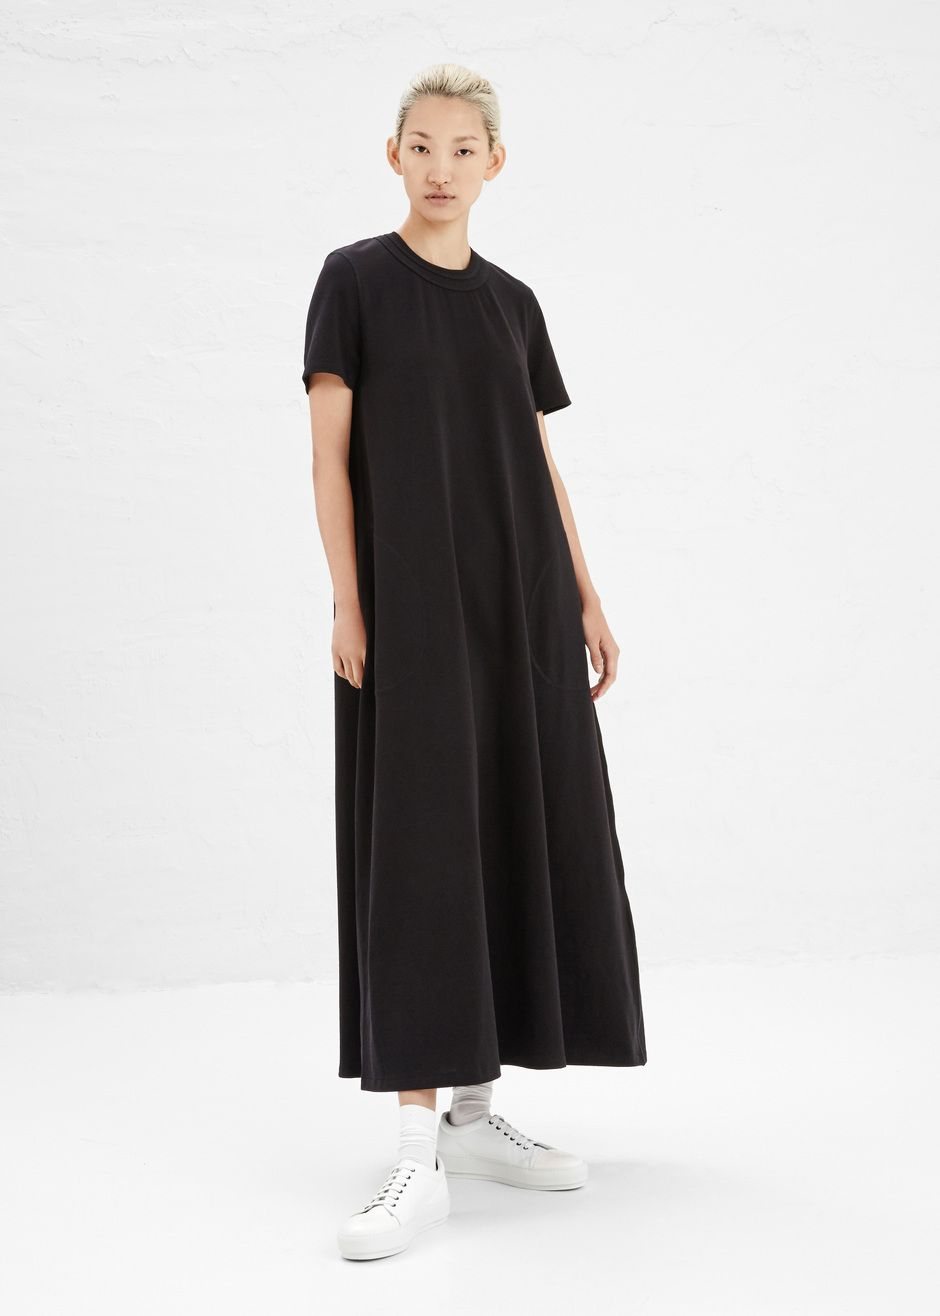 Shortsleeved dress in black cotton rounded collar with stitched